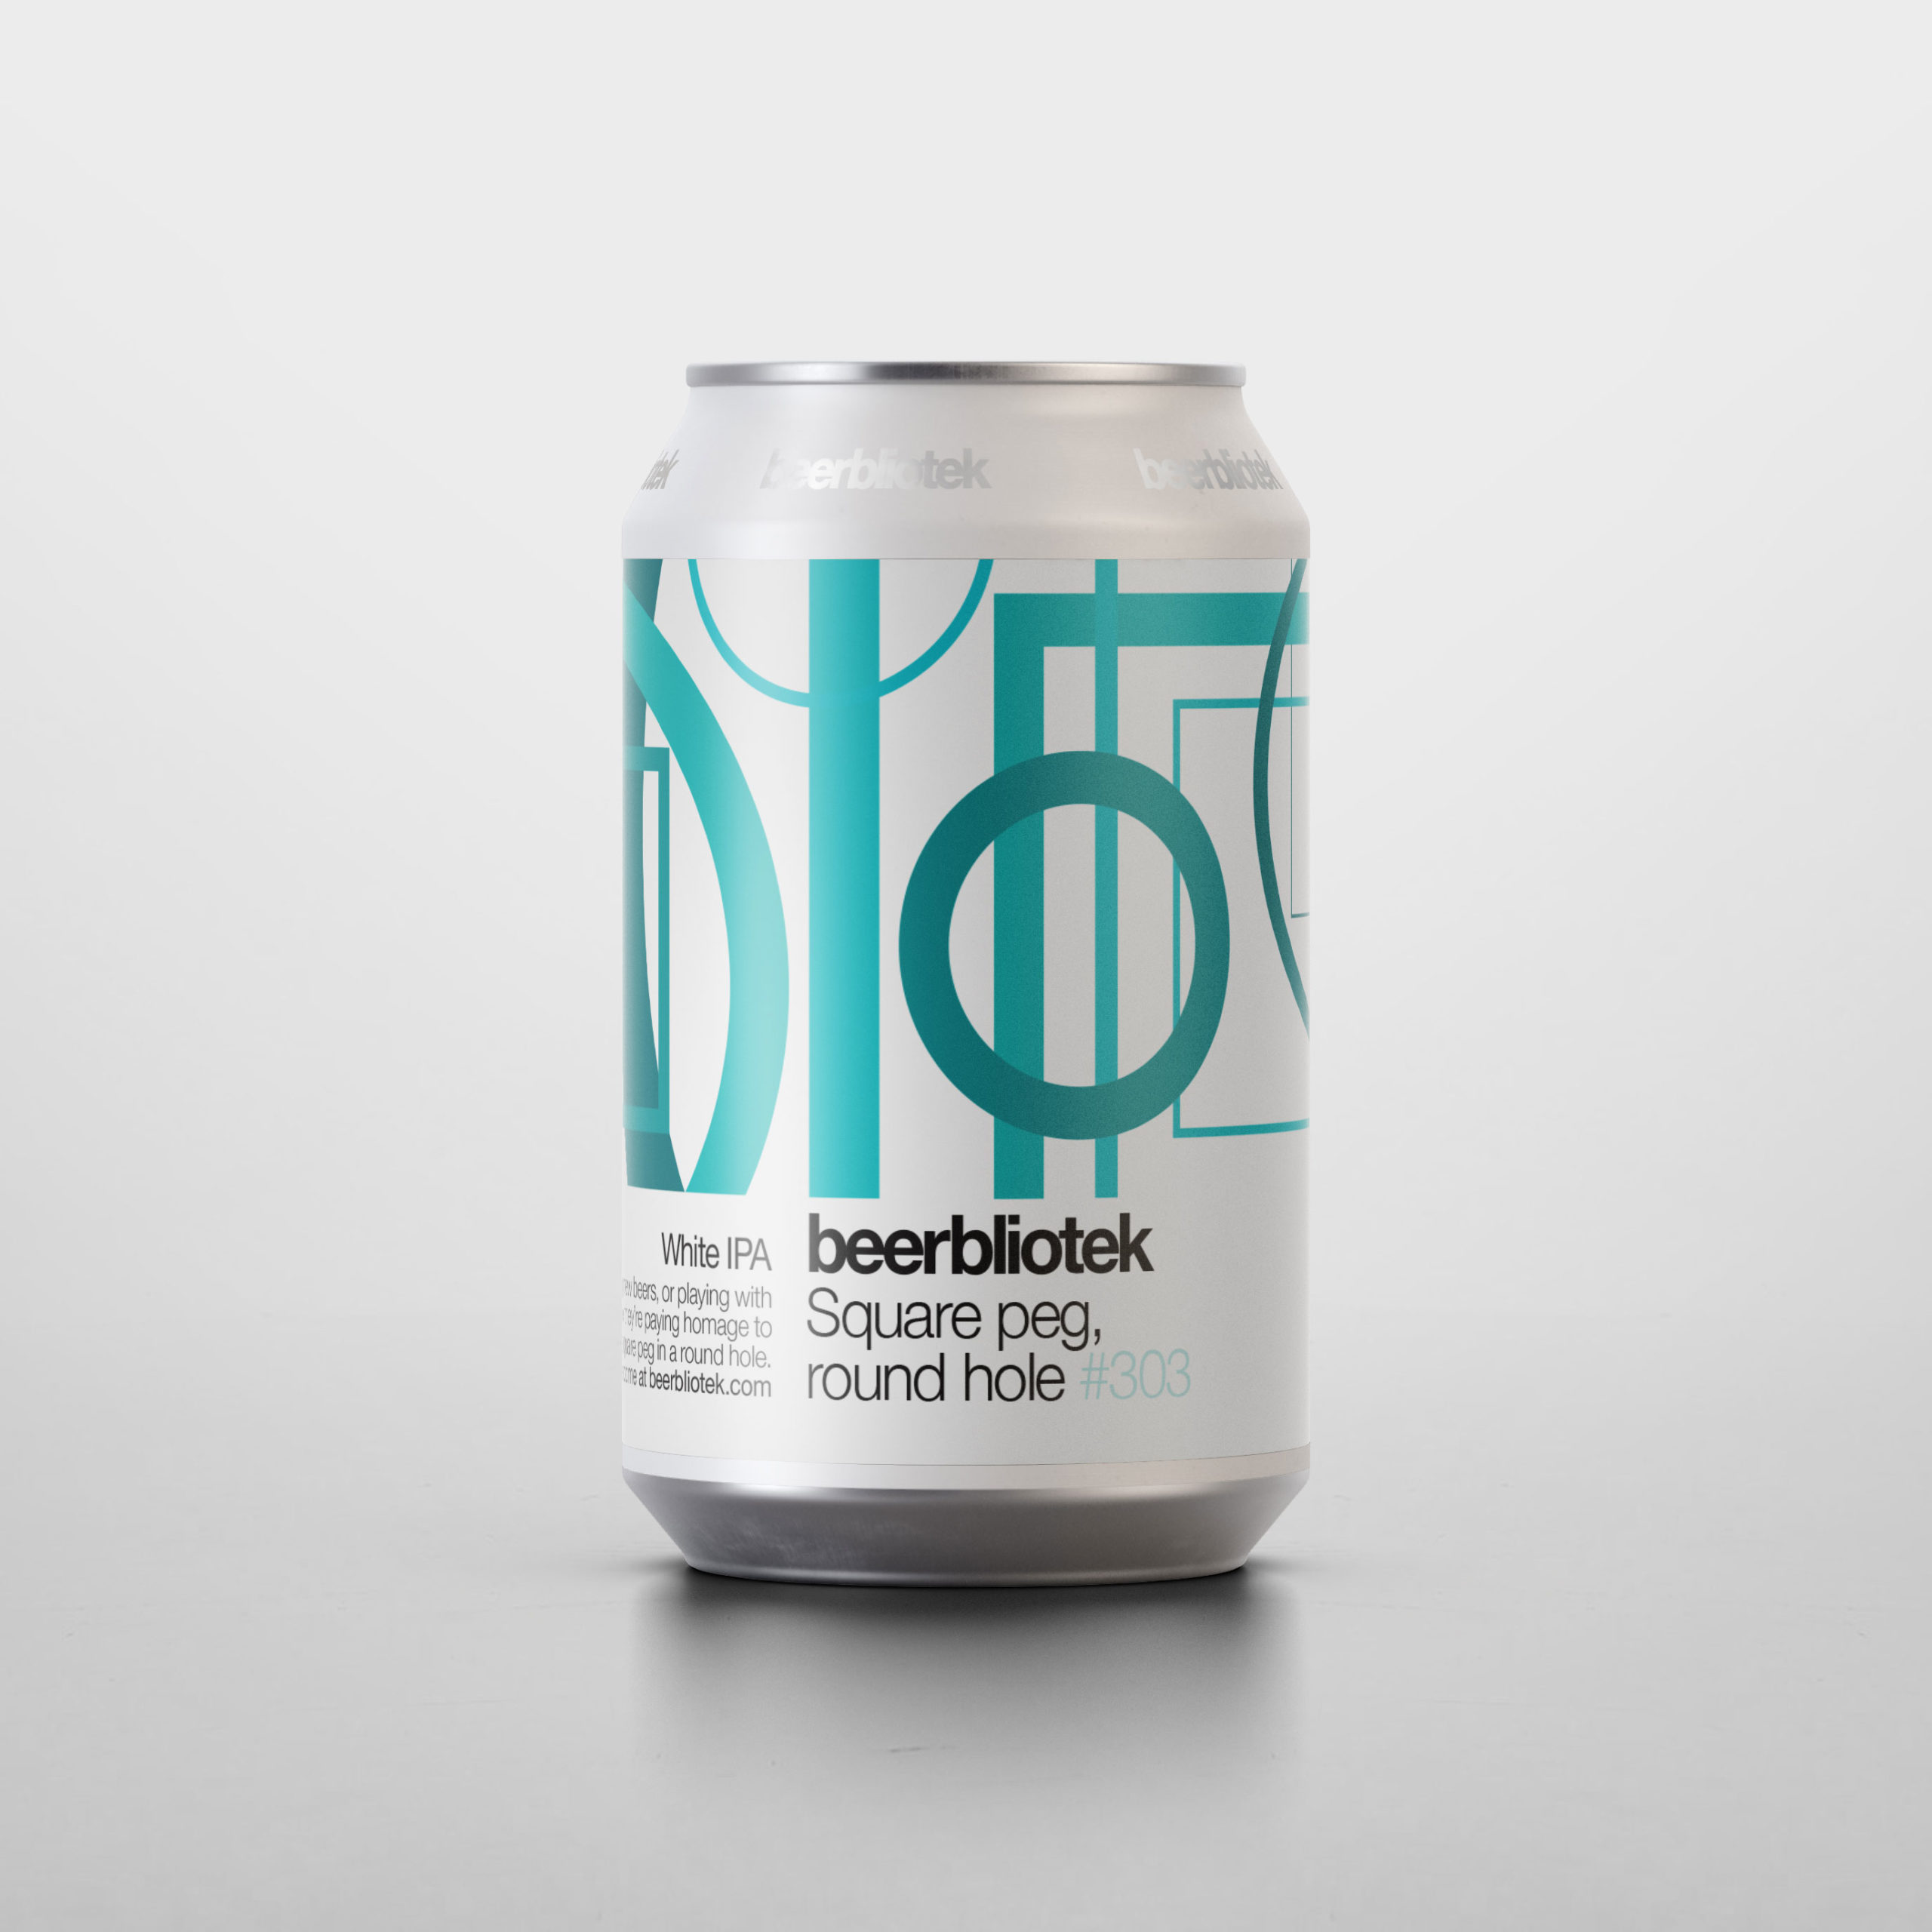 A can packshot of Square peg, round hole, a White IPA, brewed in Gothenburg, by Swedish Craft Brewery Beerbliotek.